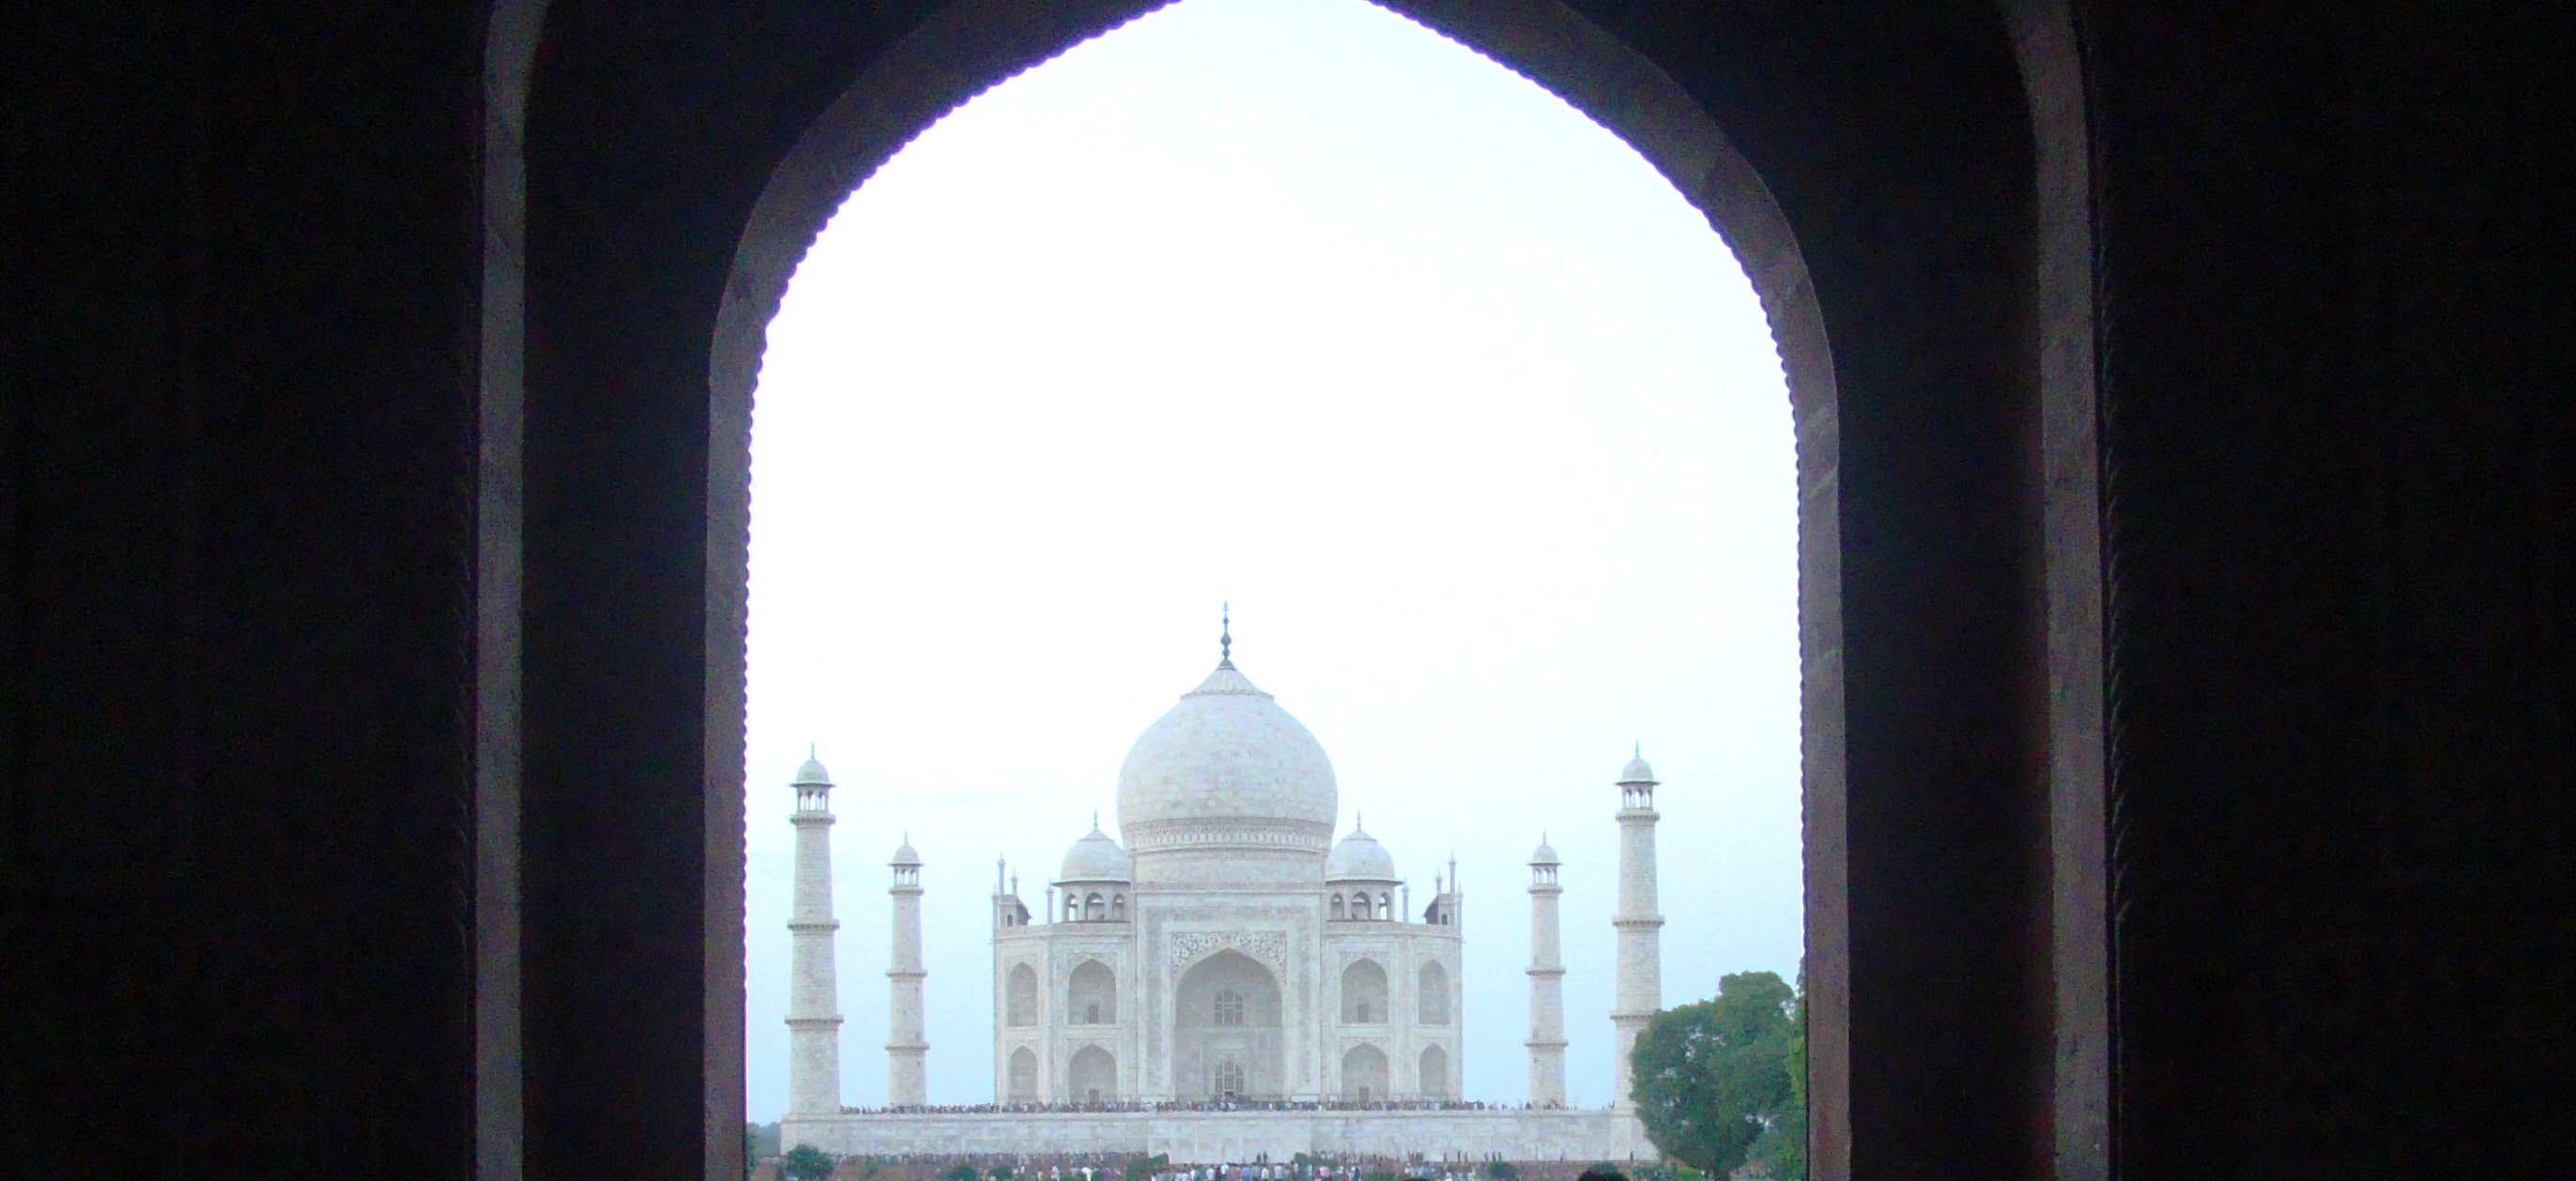 Taj Mahal from the window